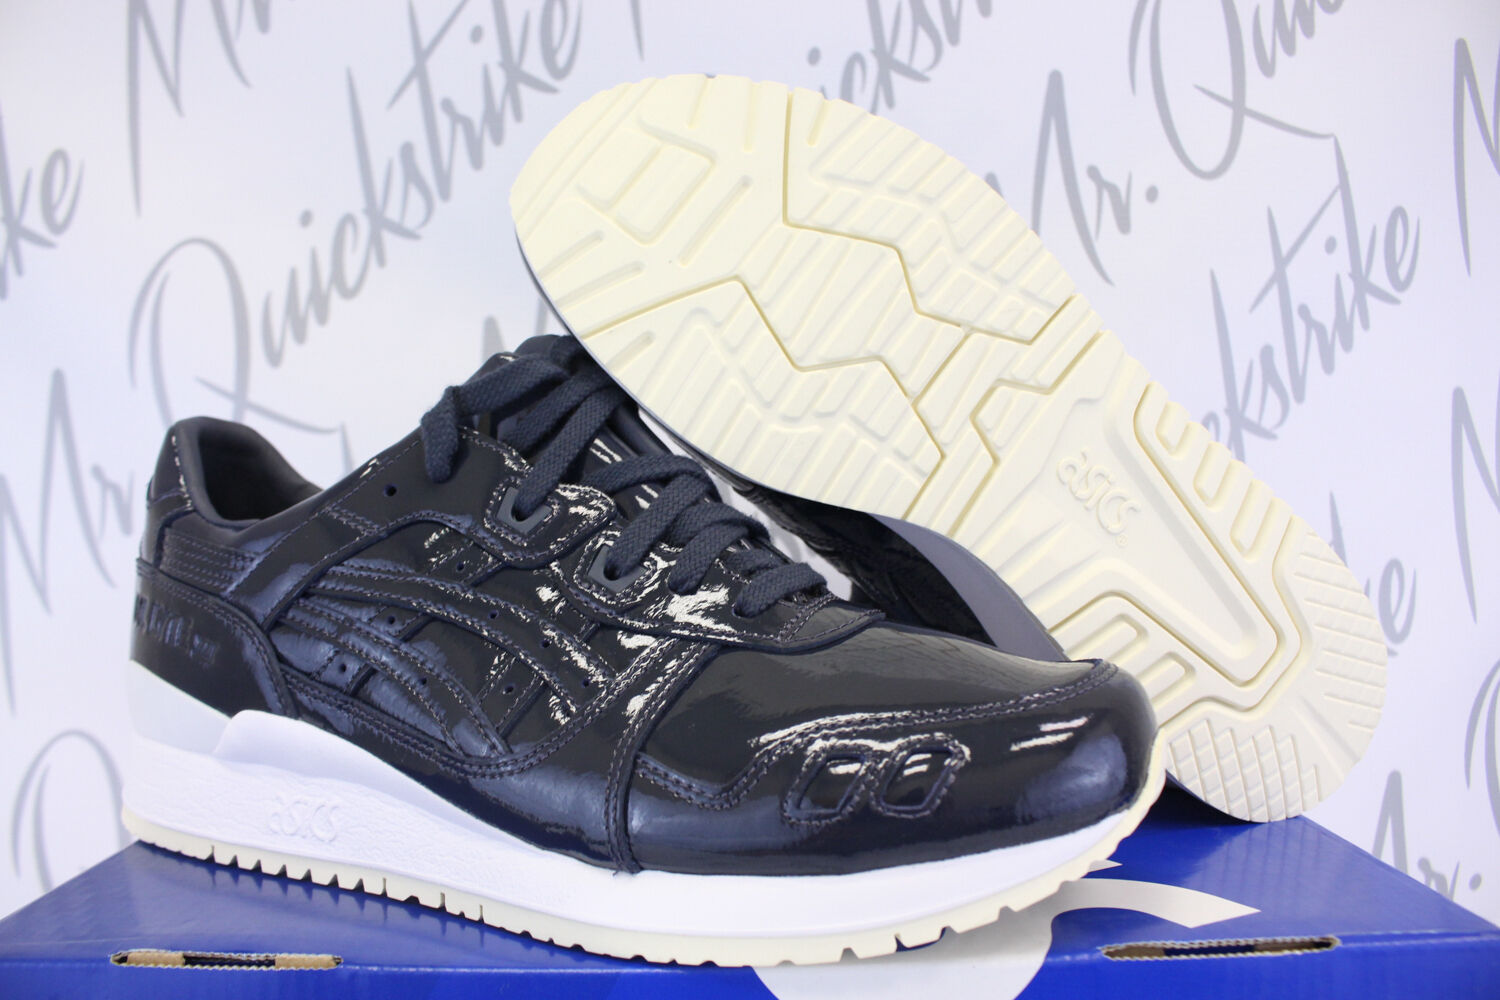 Asic gel lyte 3 iii sz 10,5 inchiostro indiano indiano indiano cuoio h7h1l 5858 623289